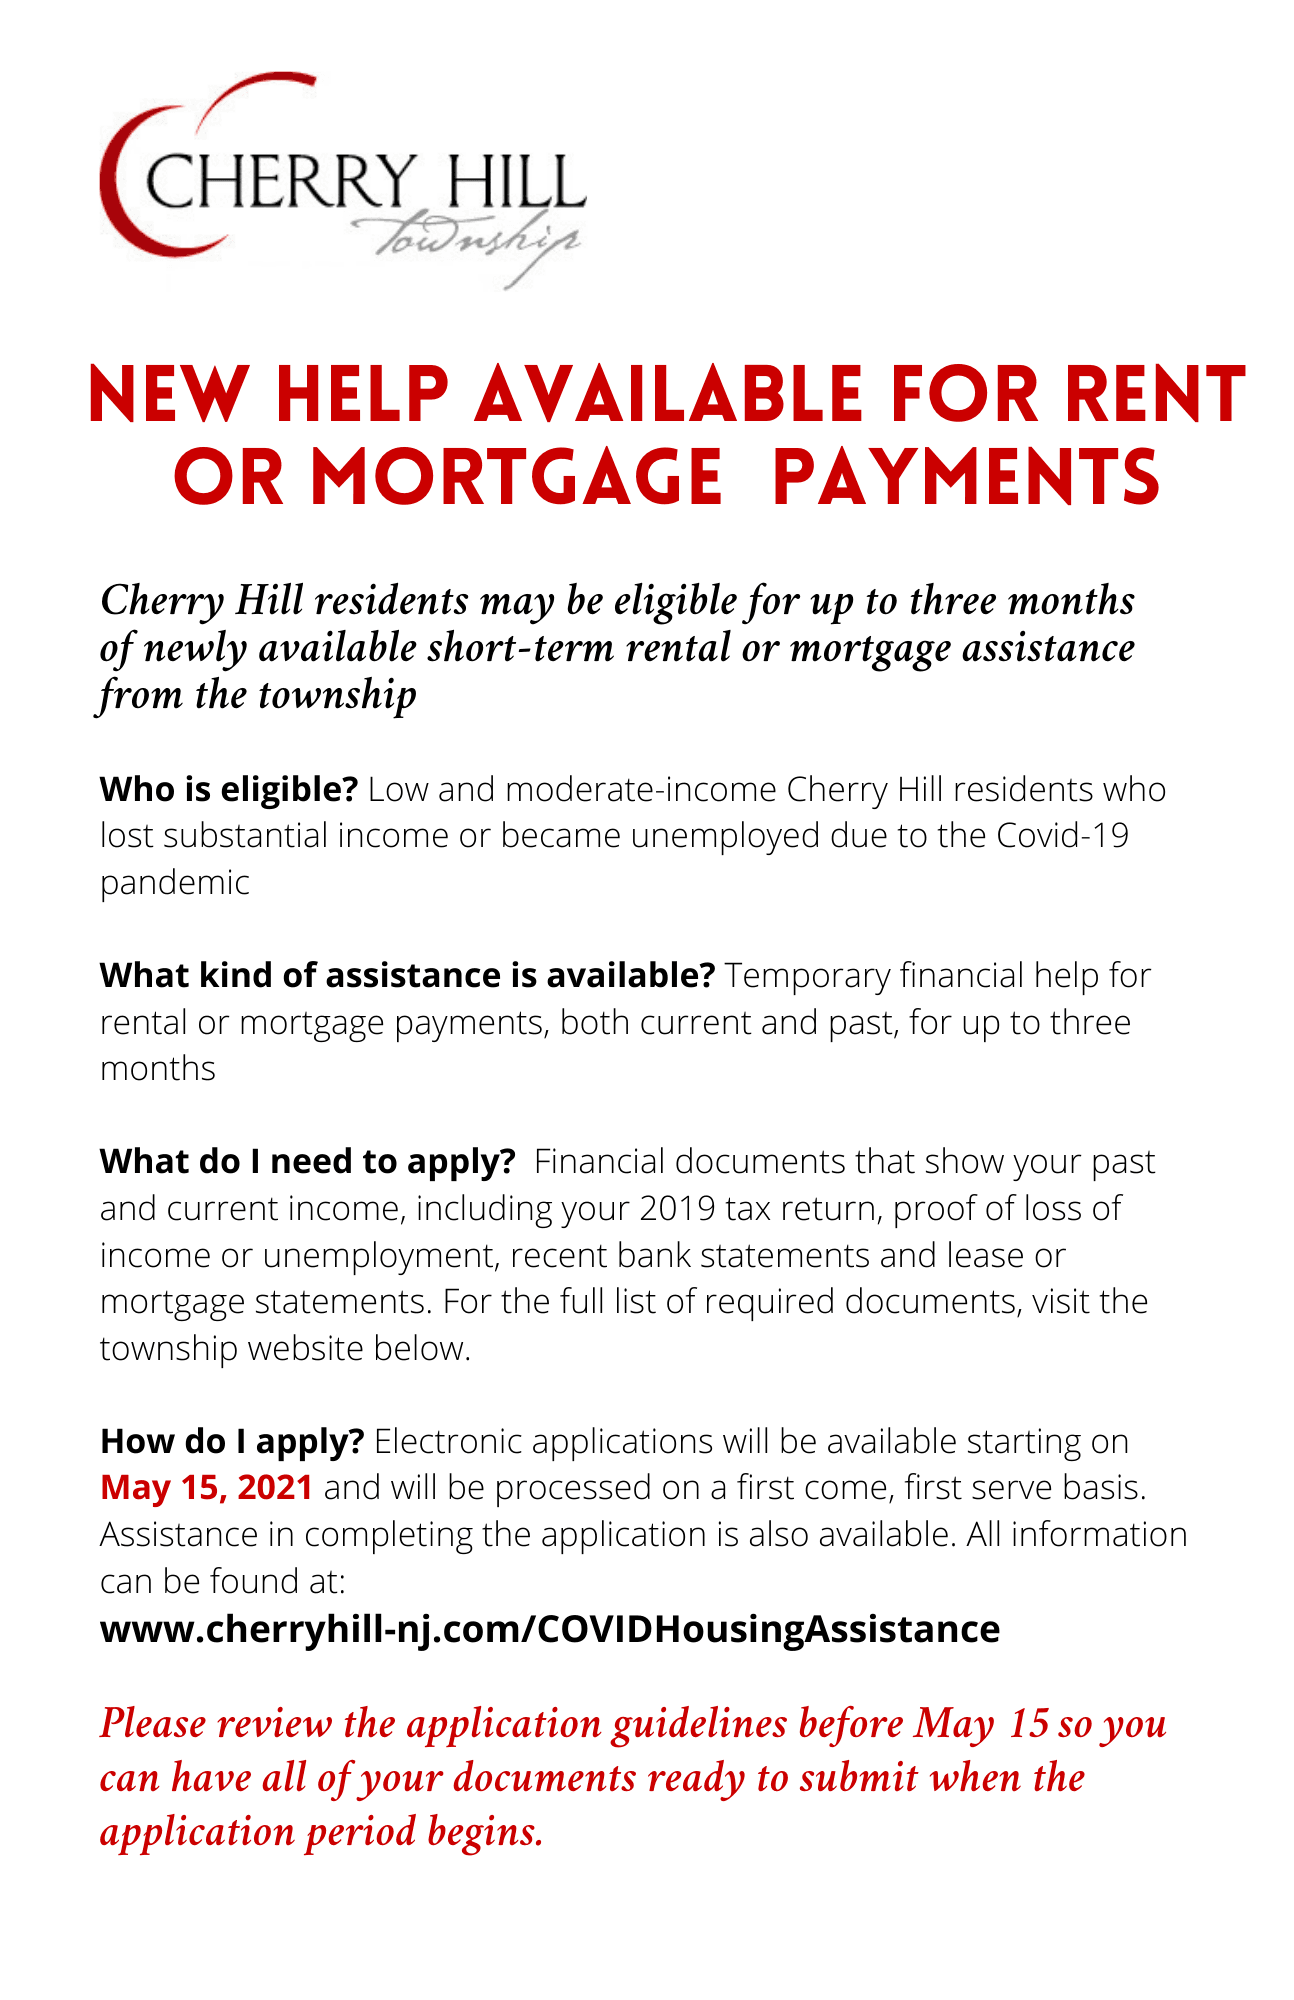 Rental and mortgage assistance program flyer